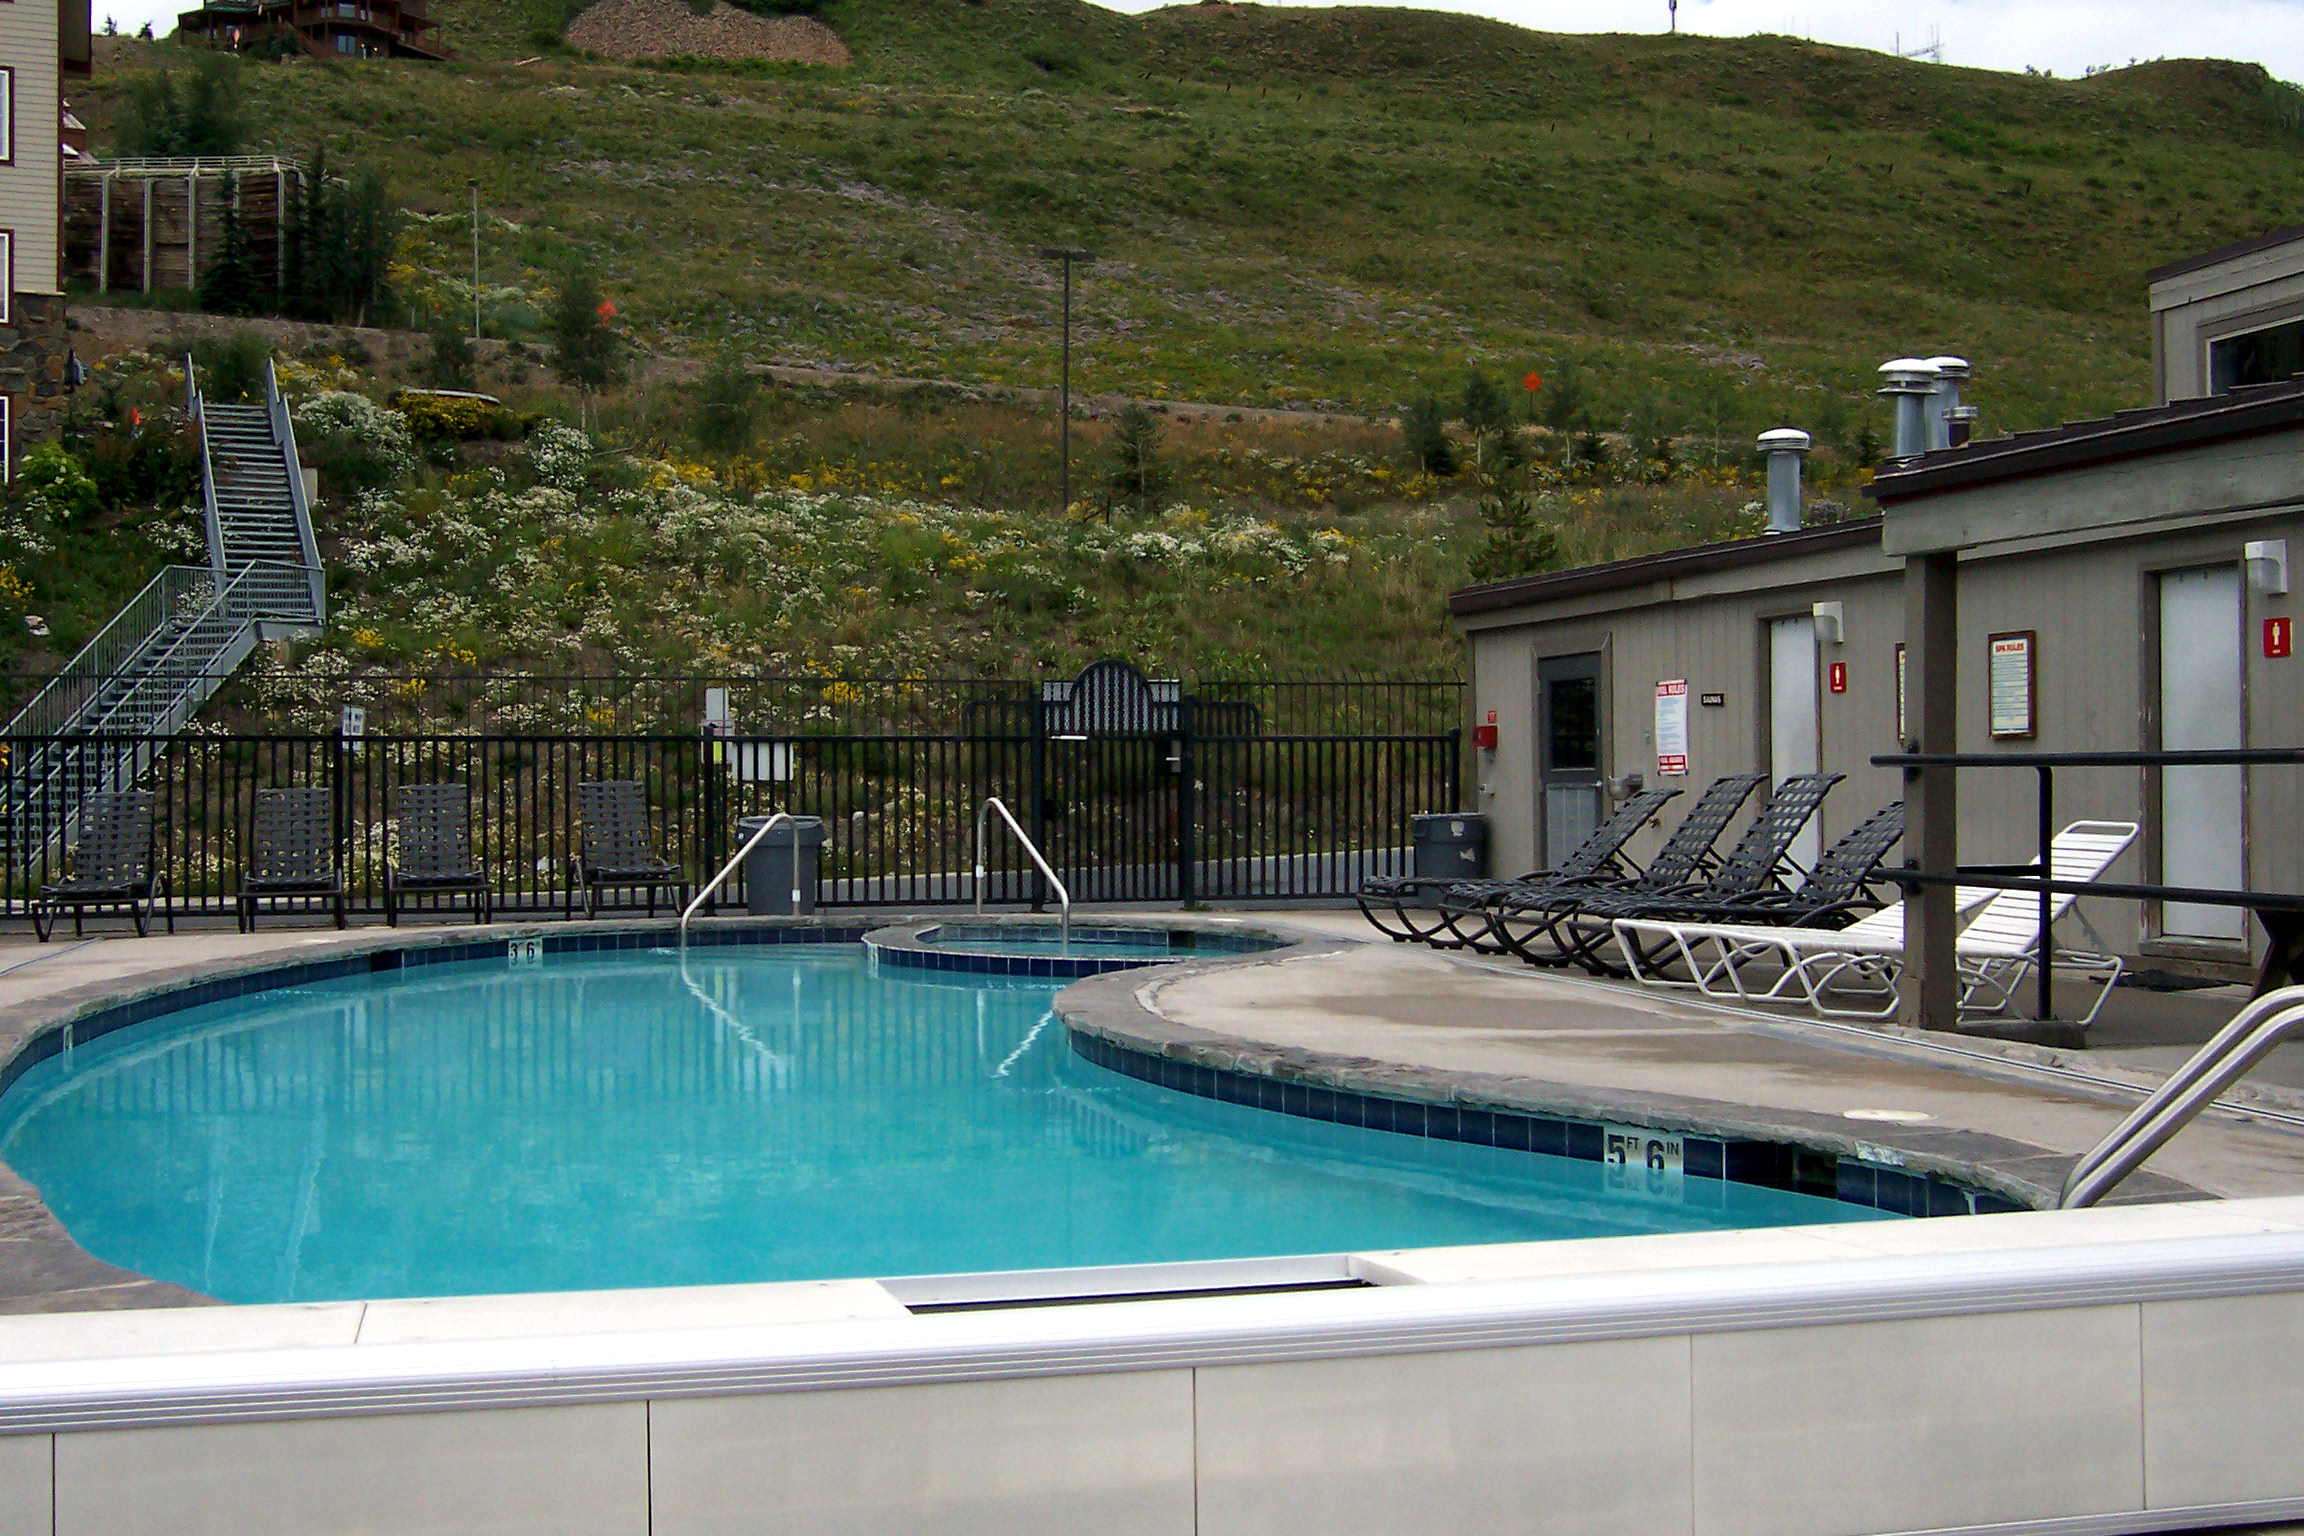 Crested Butte pool at Chateaux condominiums